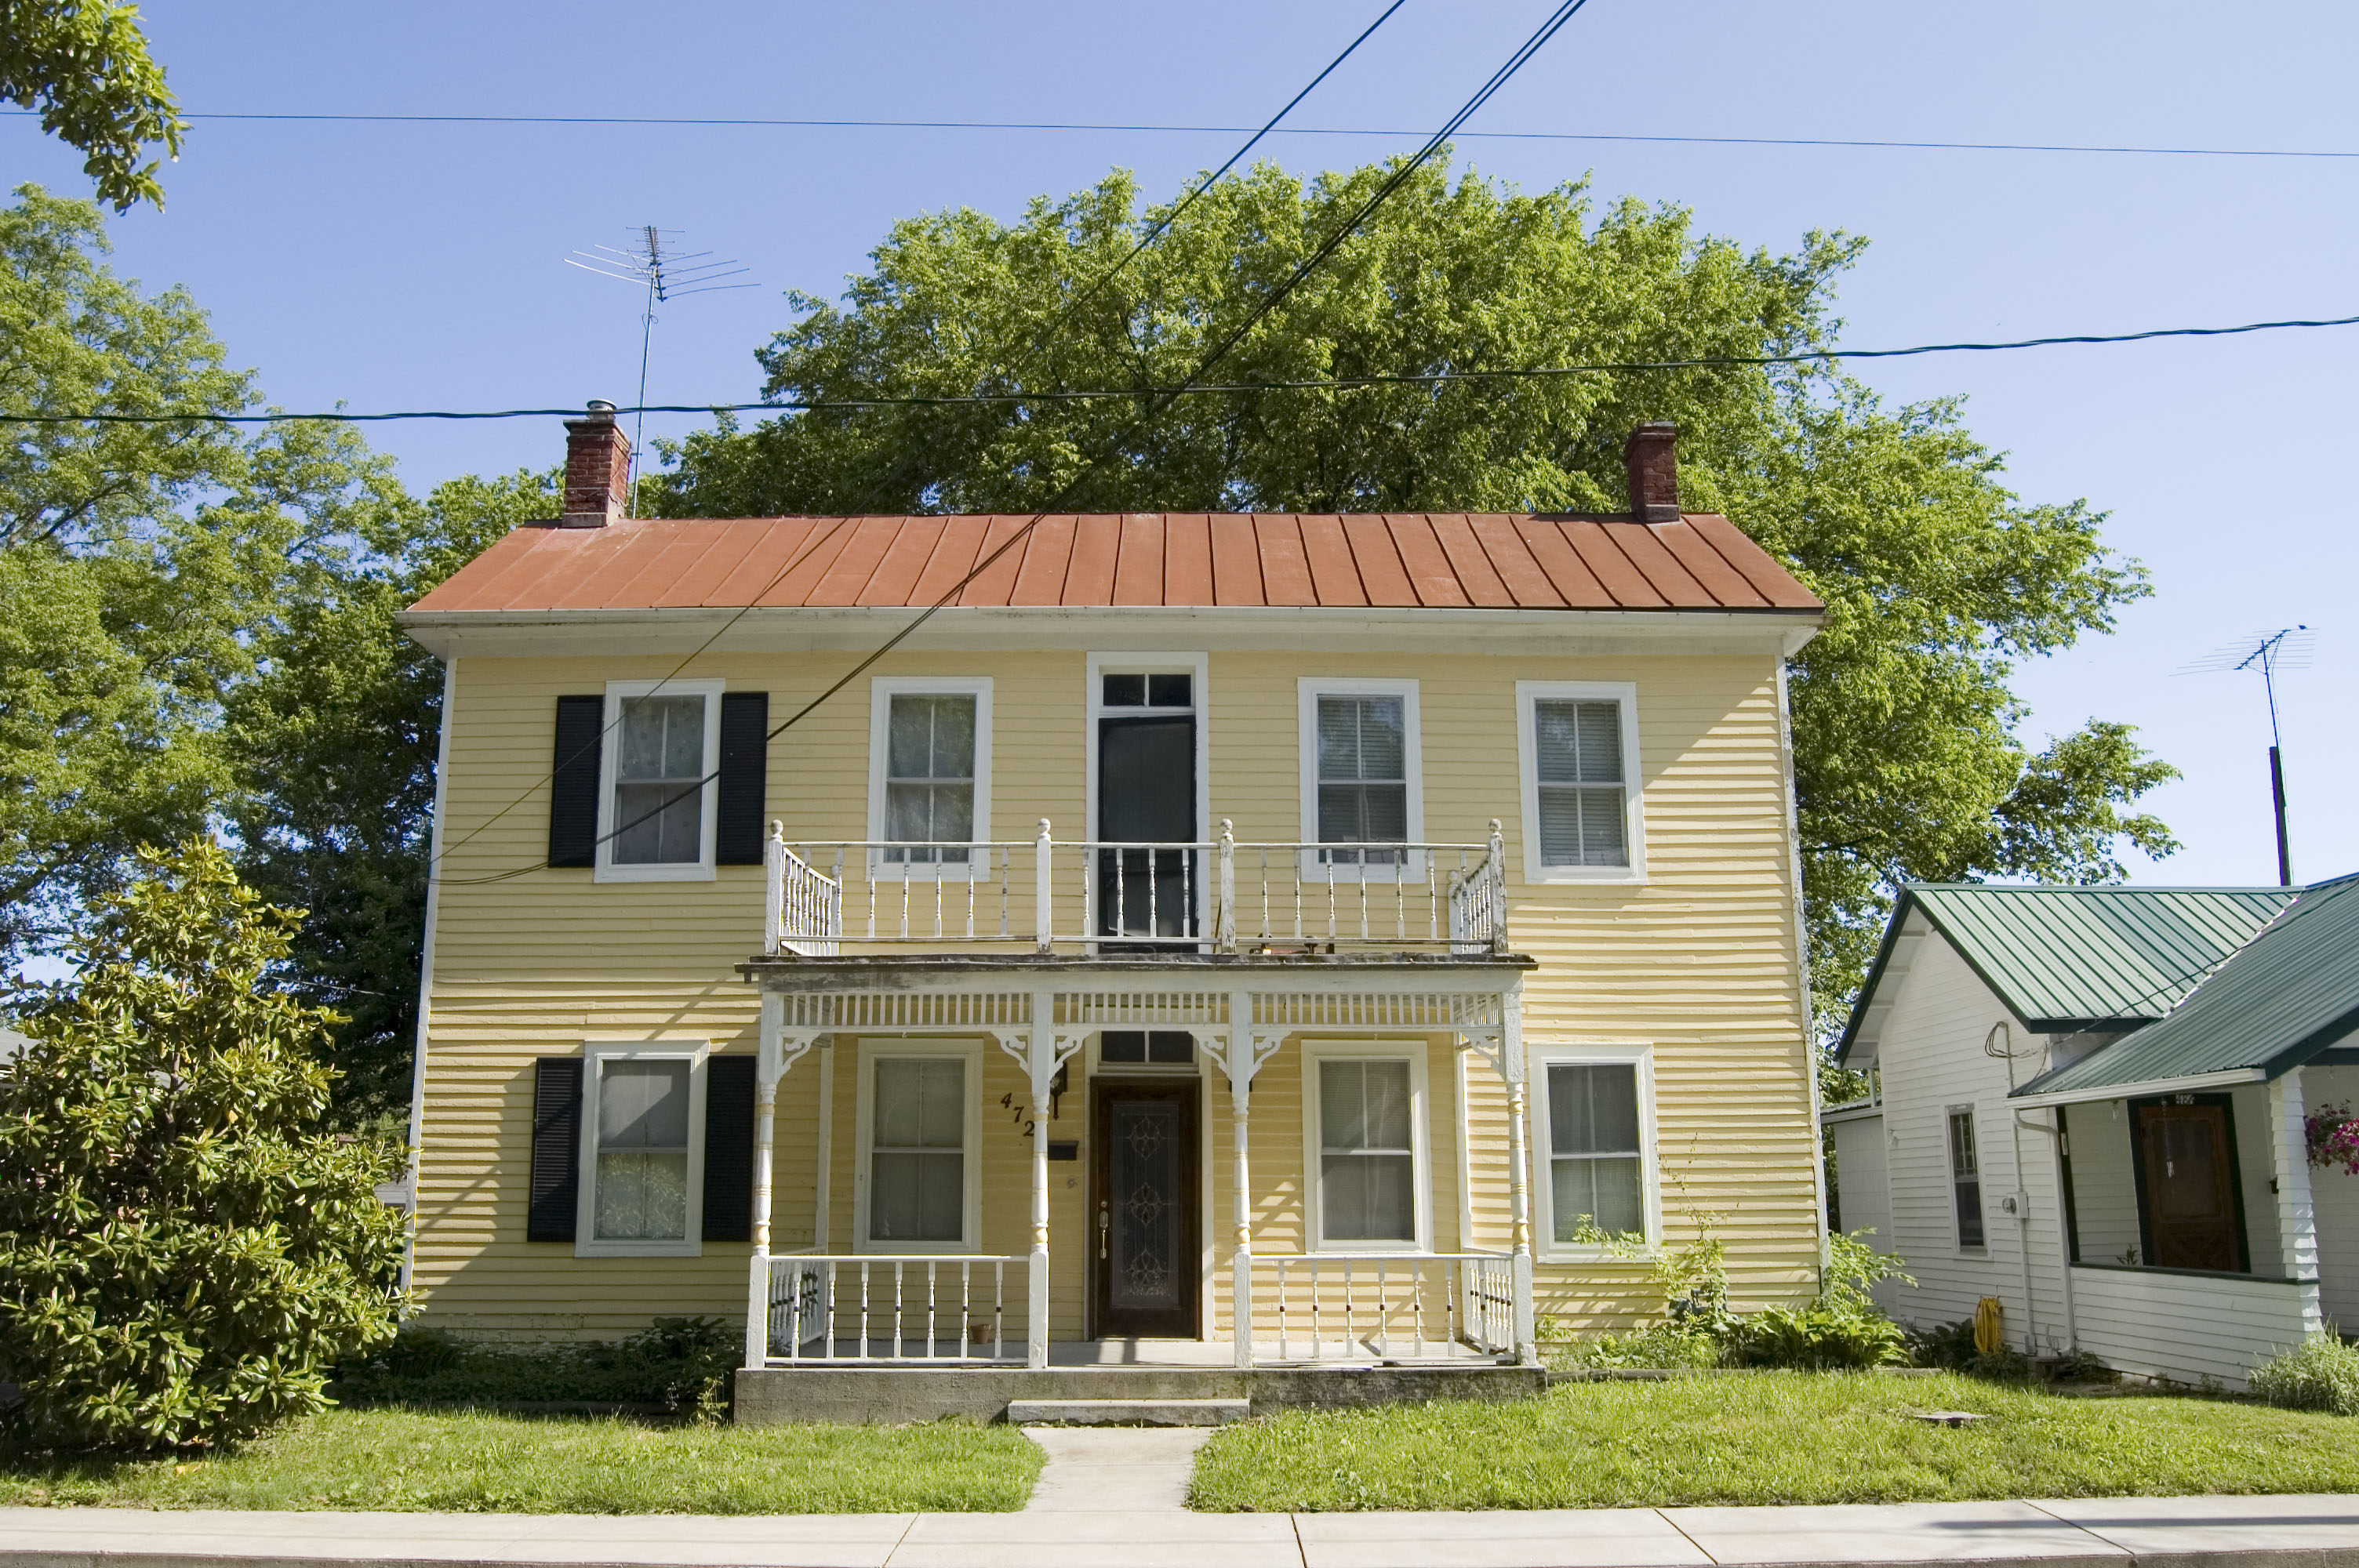 File photograph of a house in ste genevieve for Ome images